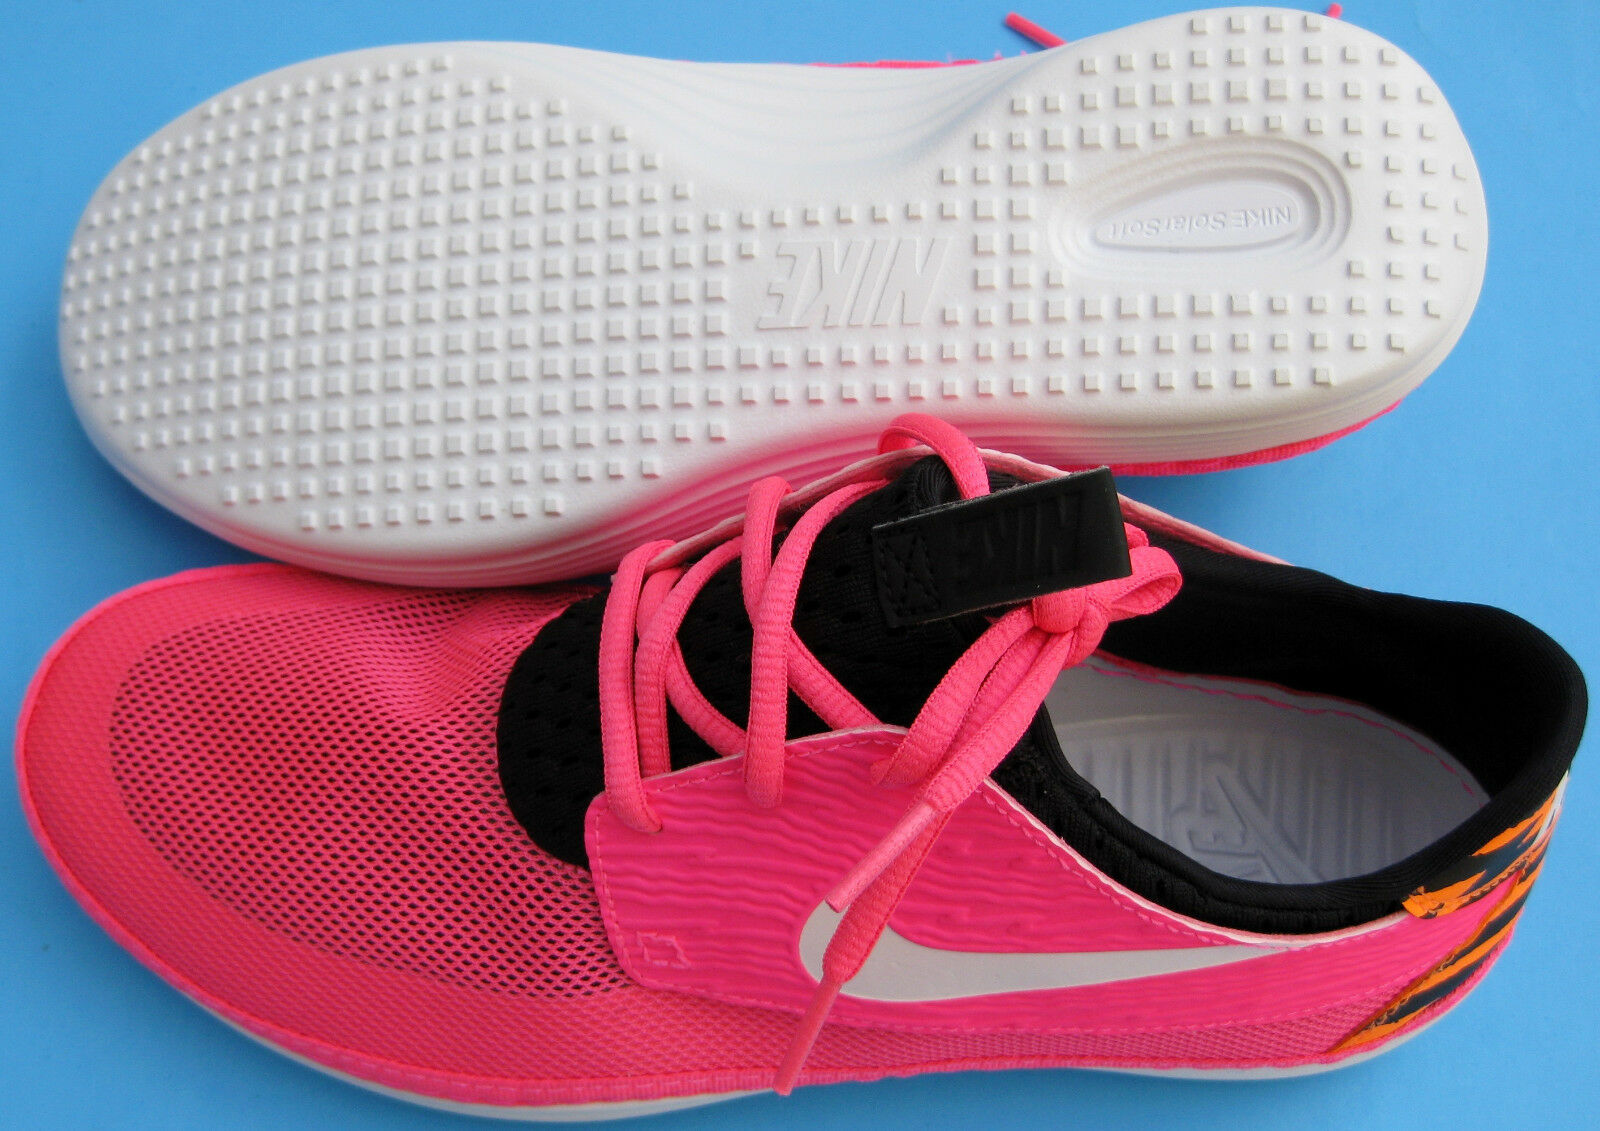 New Nike Solarsoft Moccasin Casual Sneakers 555301 618 Men Size 10